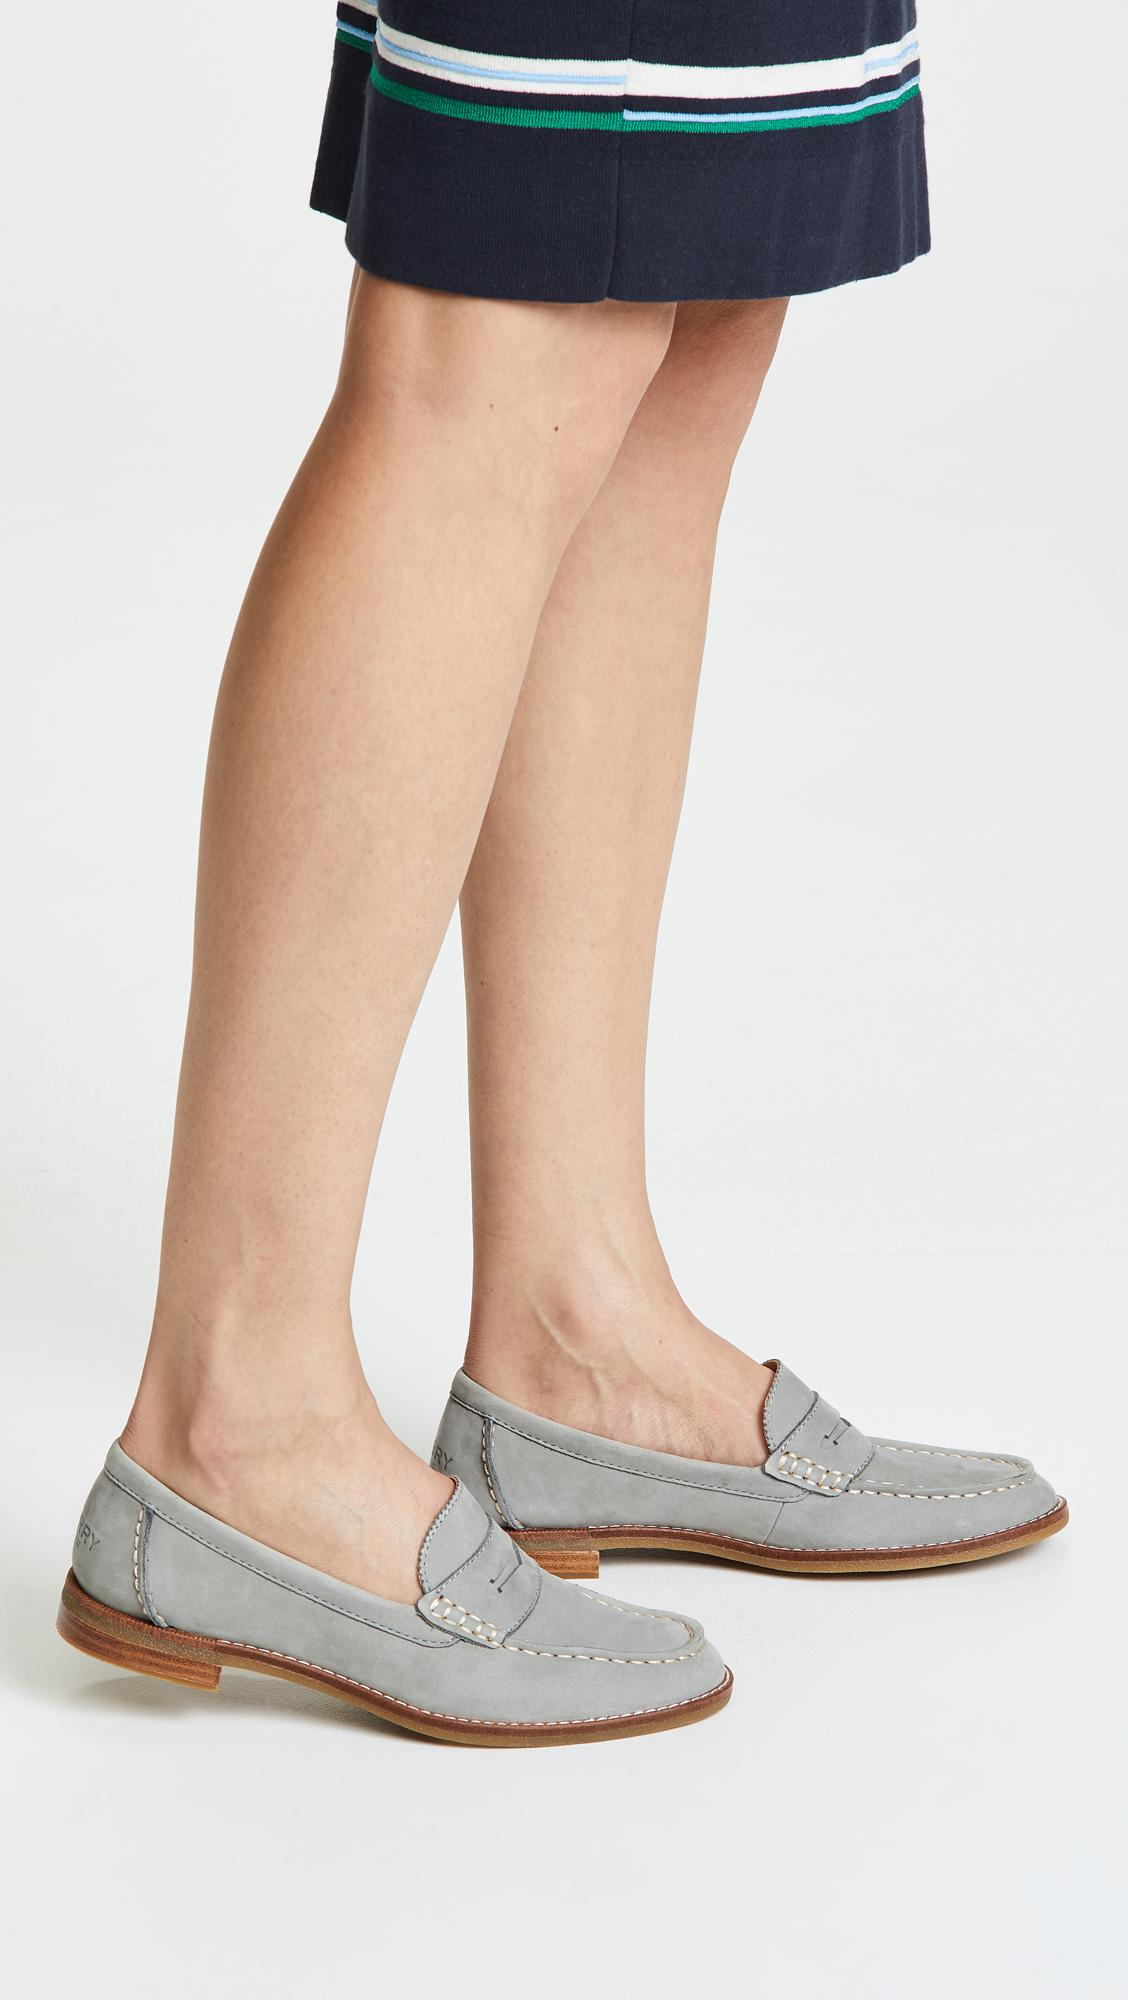 96281da8aab8 Lyst - Sperry Top-Sider Seaport Penny Loafers in Gray